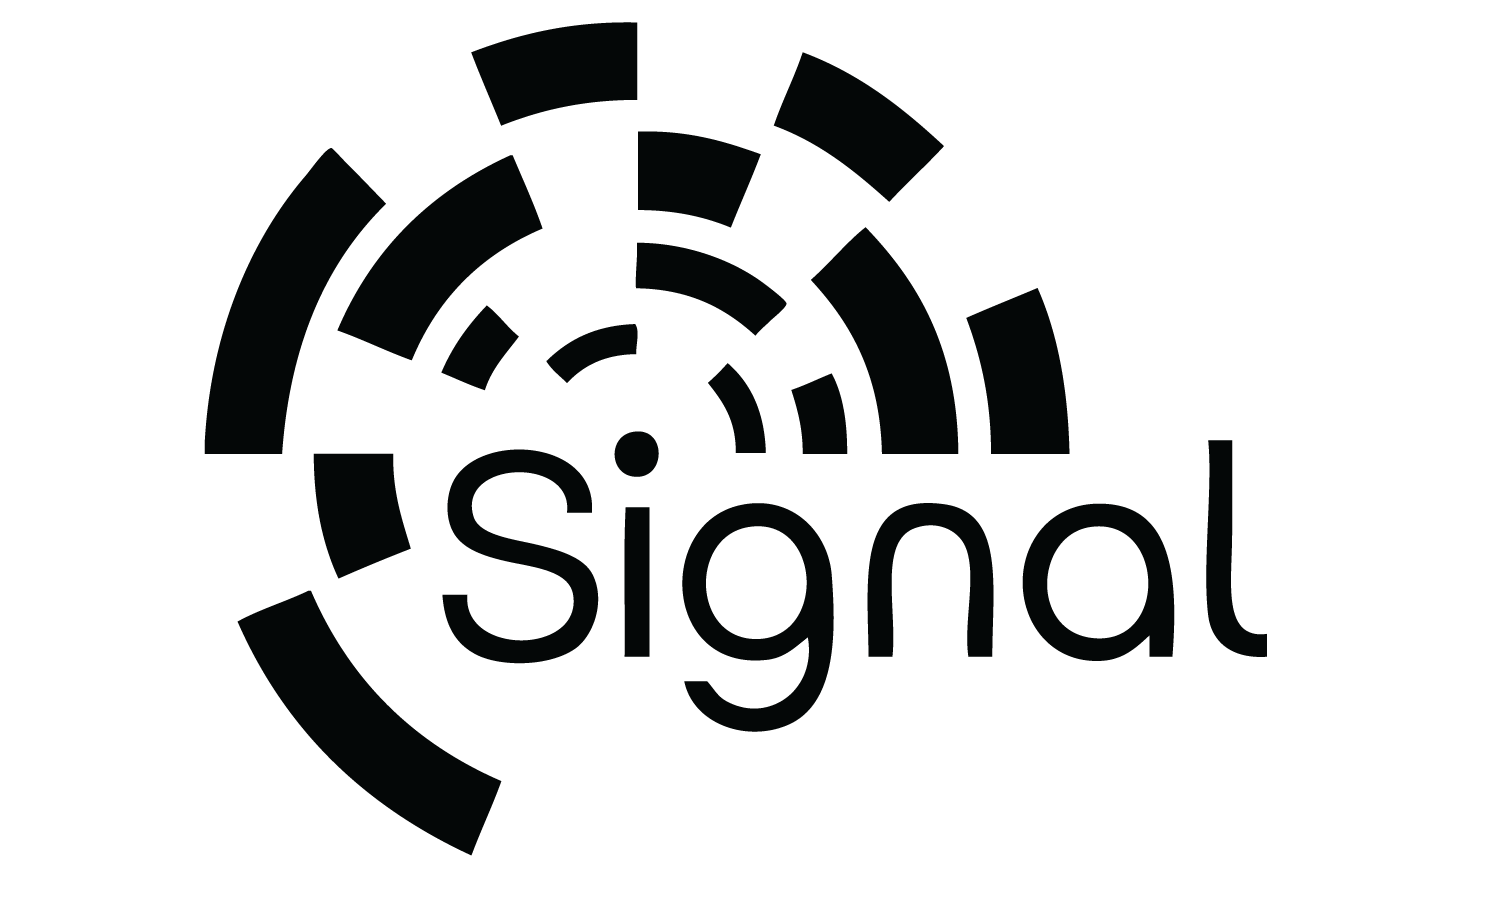 The Signal app embeds crypto. About the platform